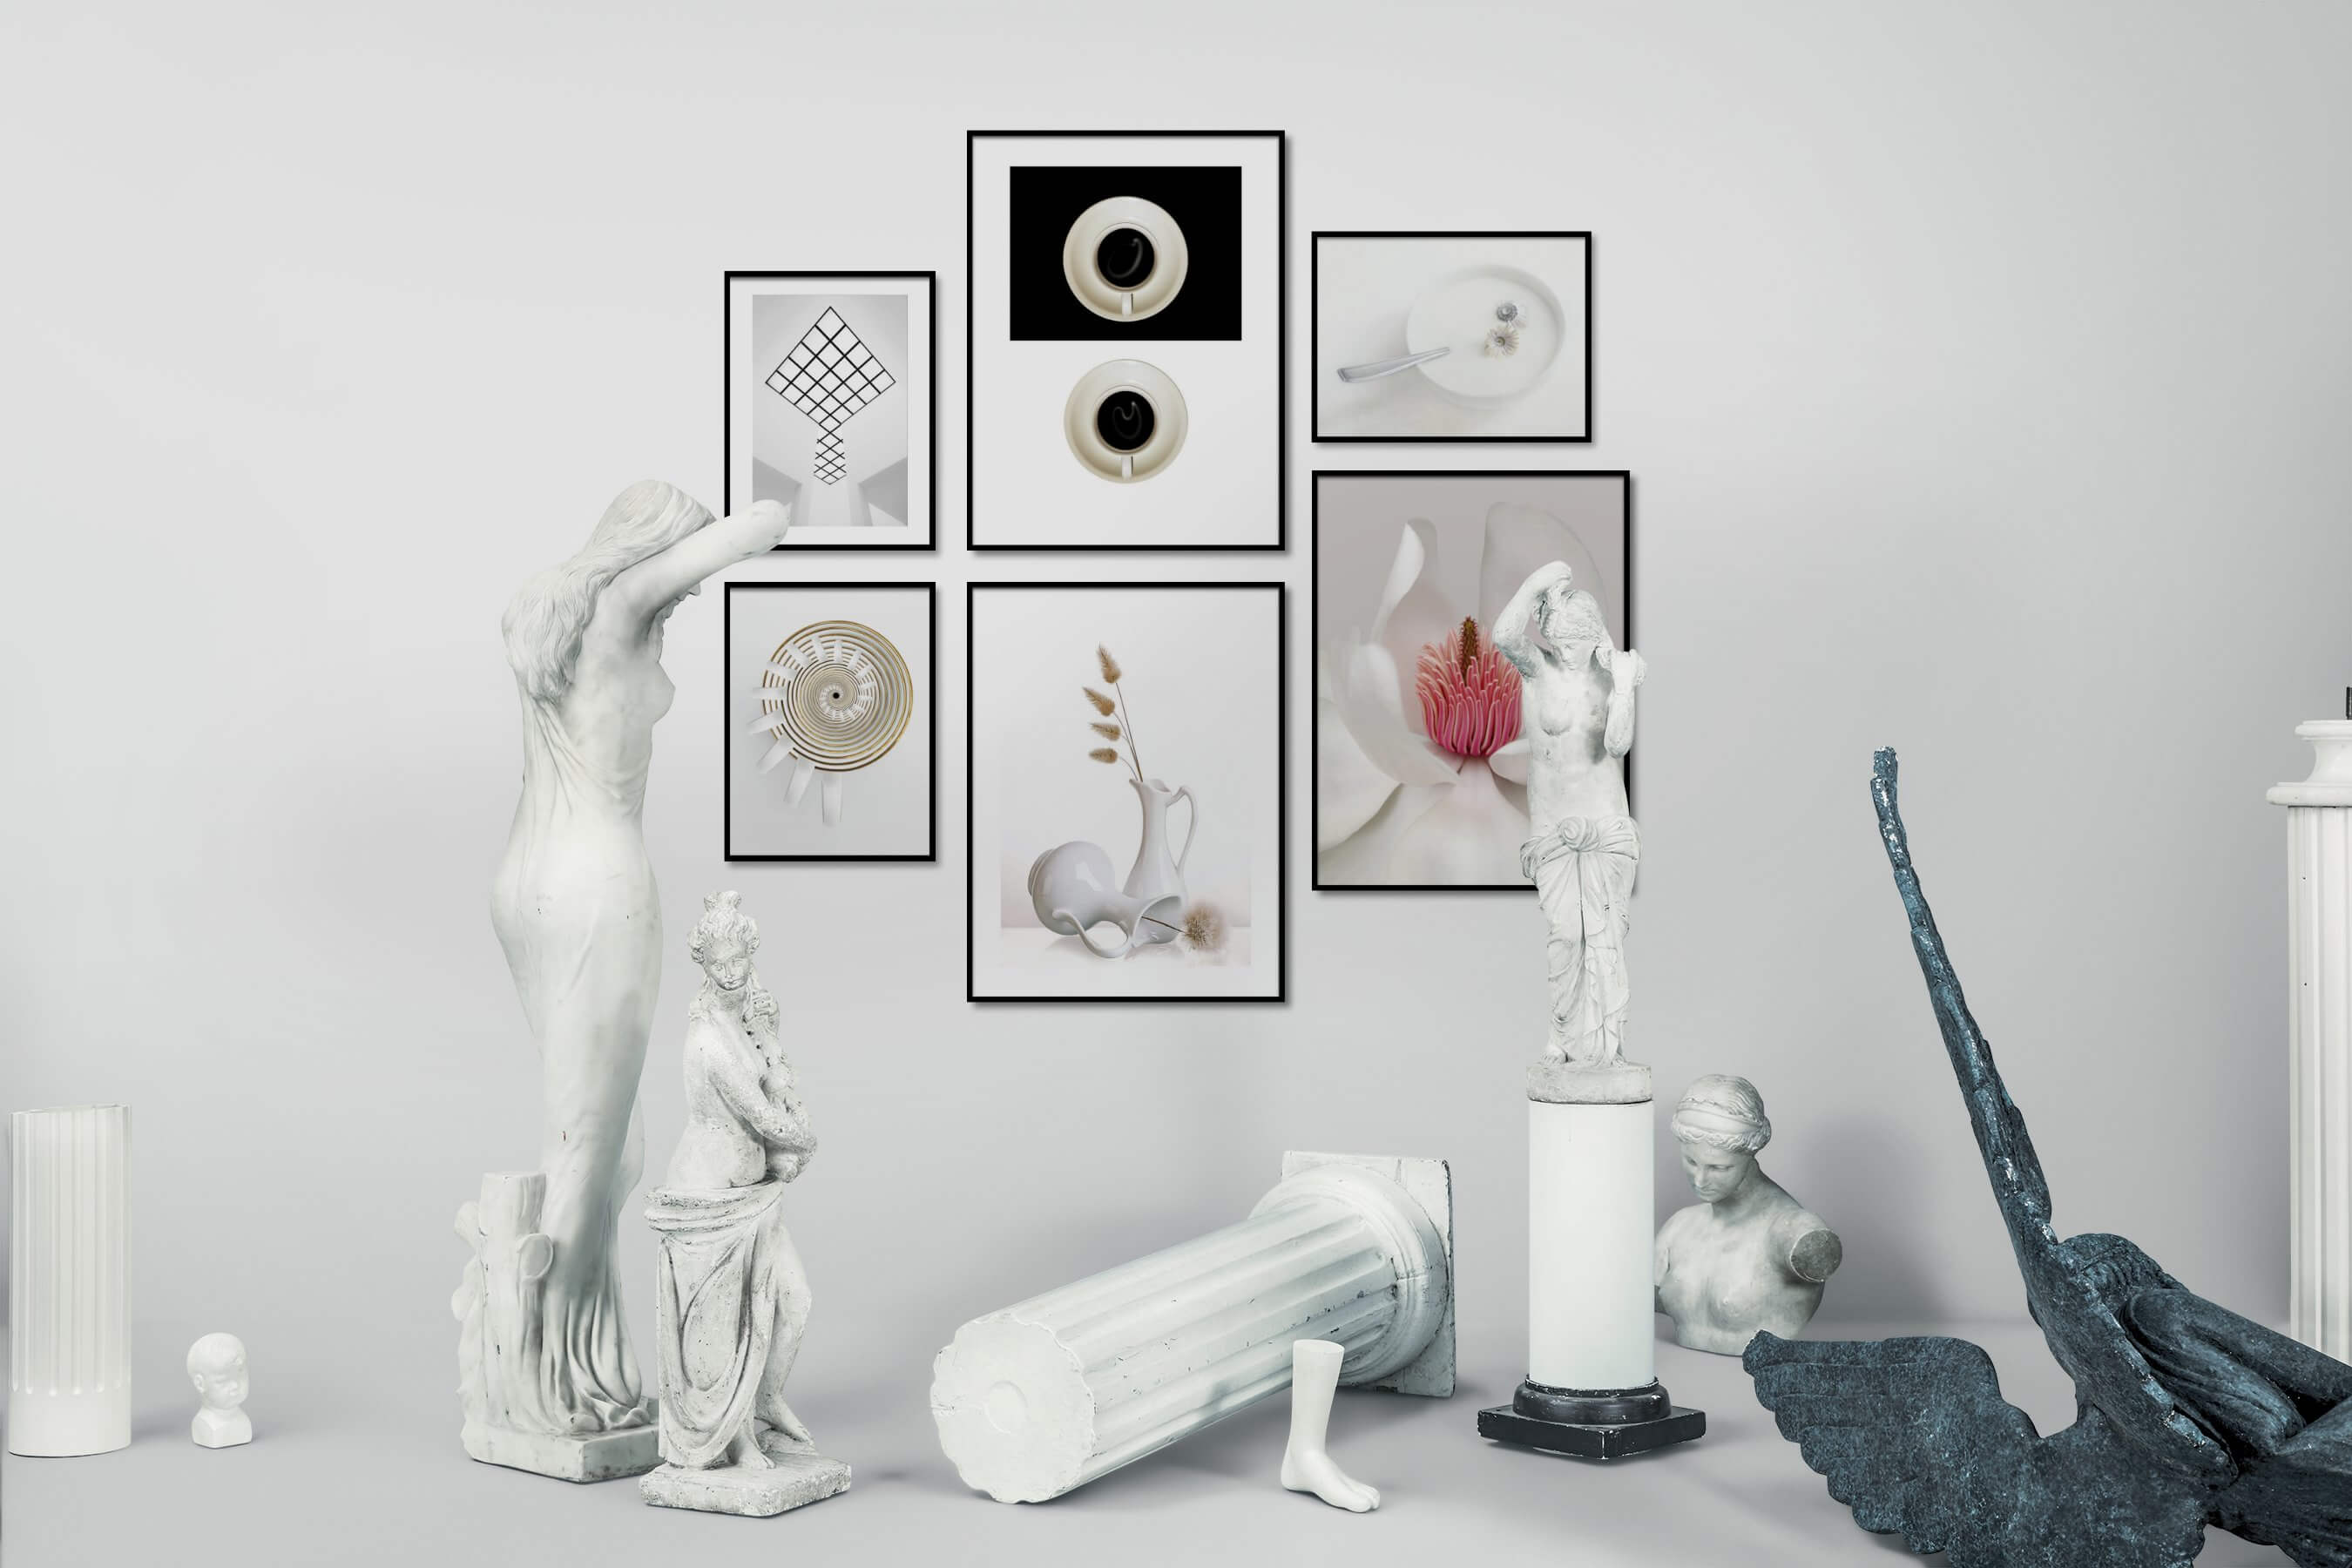 Gallery wall idea with six framed pictures arranged on a wall depicting Black & White, For the Minimalist, Bright Tones, Flowers & Plants, For the Moderate, and Mindfulness